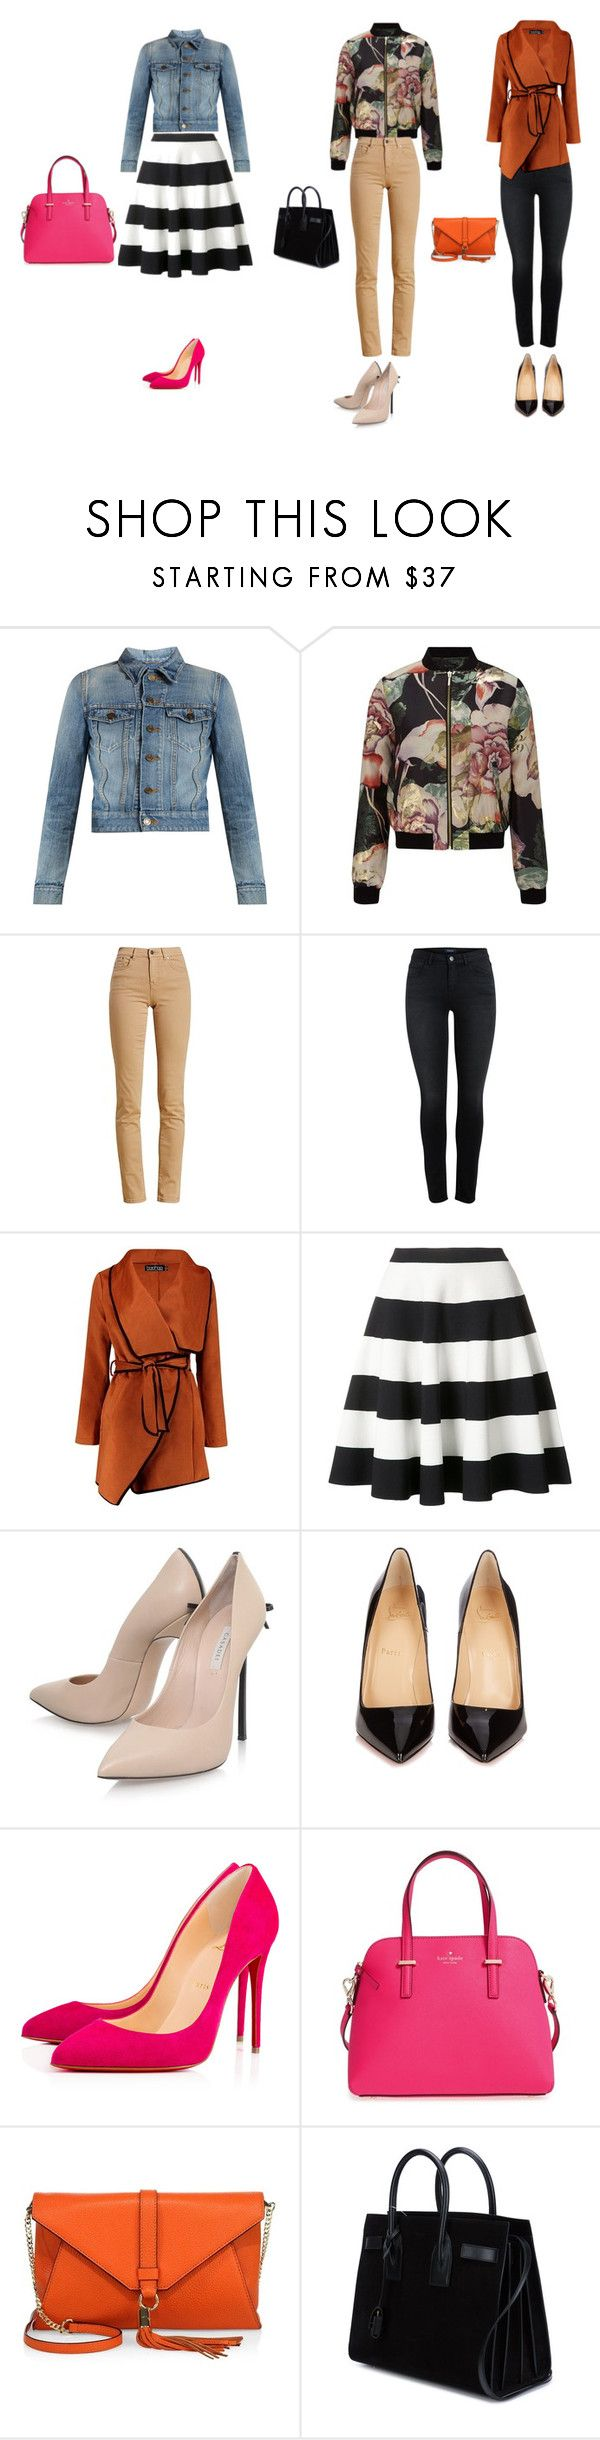 """Otoño invierno 2017"" by chio-650 on Polyvore featuring moda, Yves Saint Laurent, Miss Selfridge, Barbour, Boohoo, Akris Punto, Casadei, Christian Louboutin, Kate Spade y Milly"